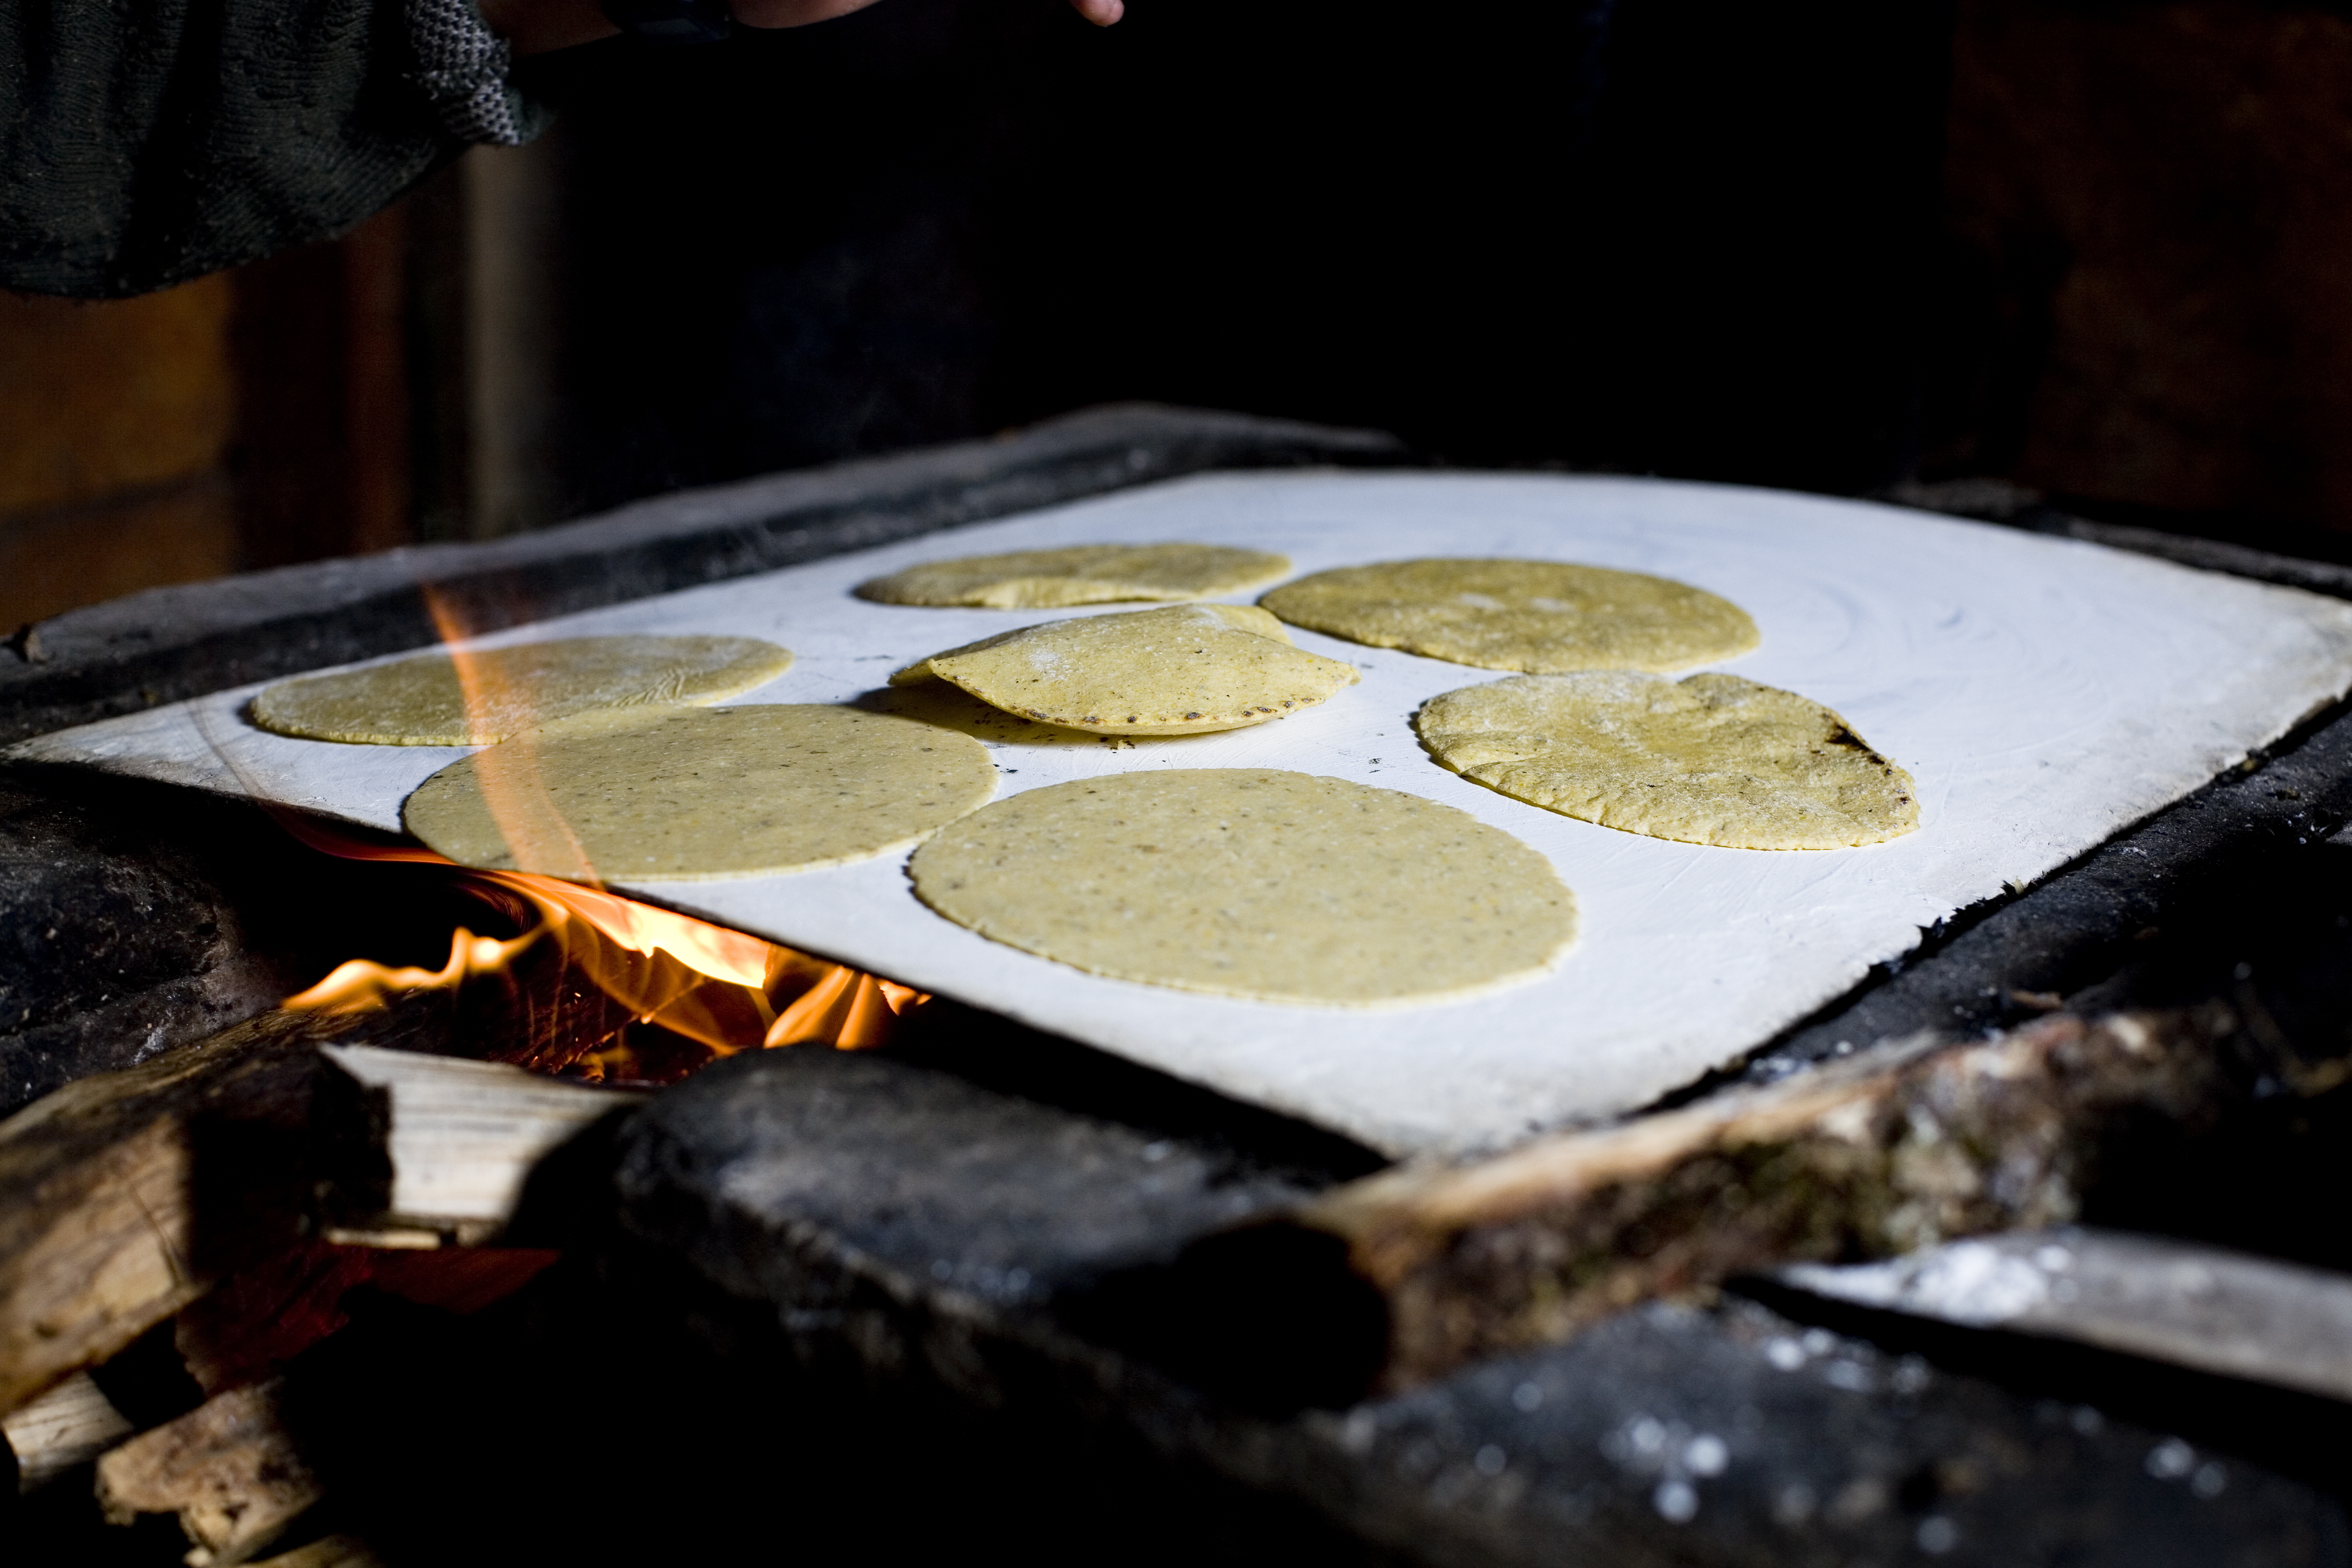 GMO-free corn tortillas cooking in a Zapatista middle school in the highlands of Chiapas, Mexico.